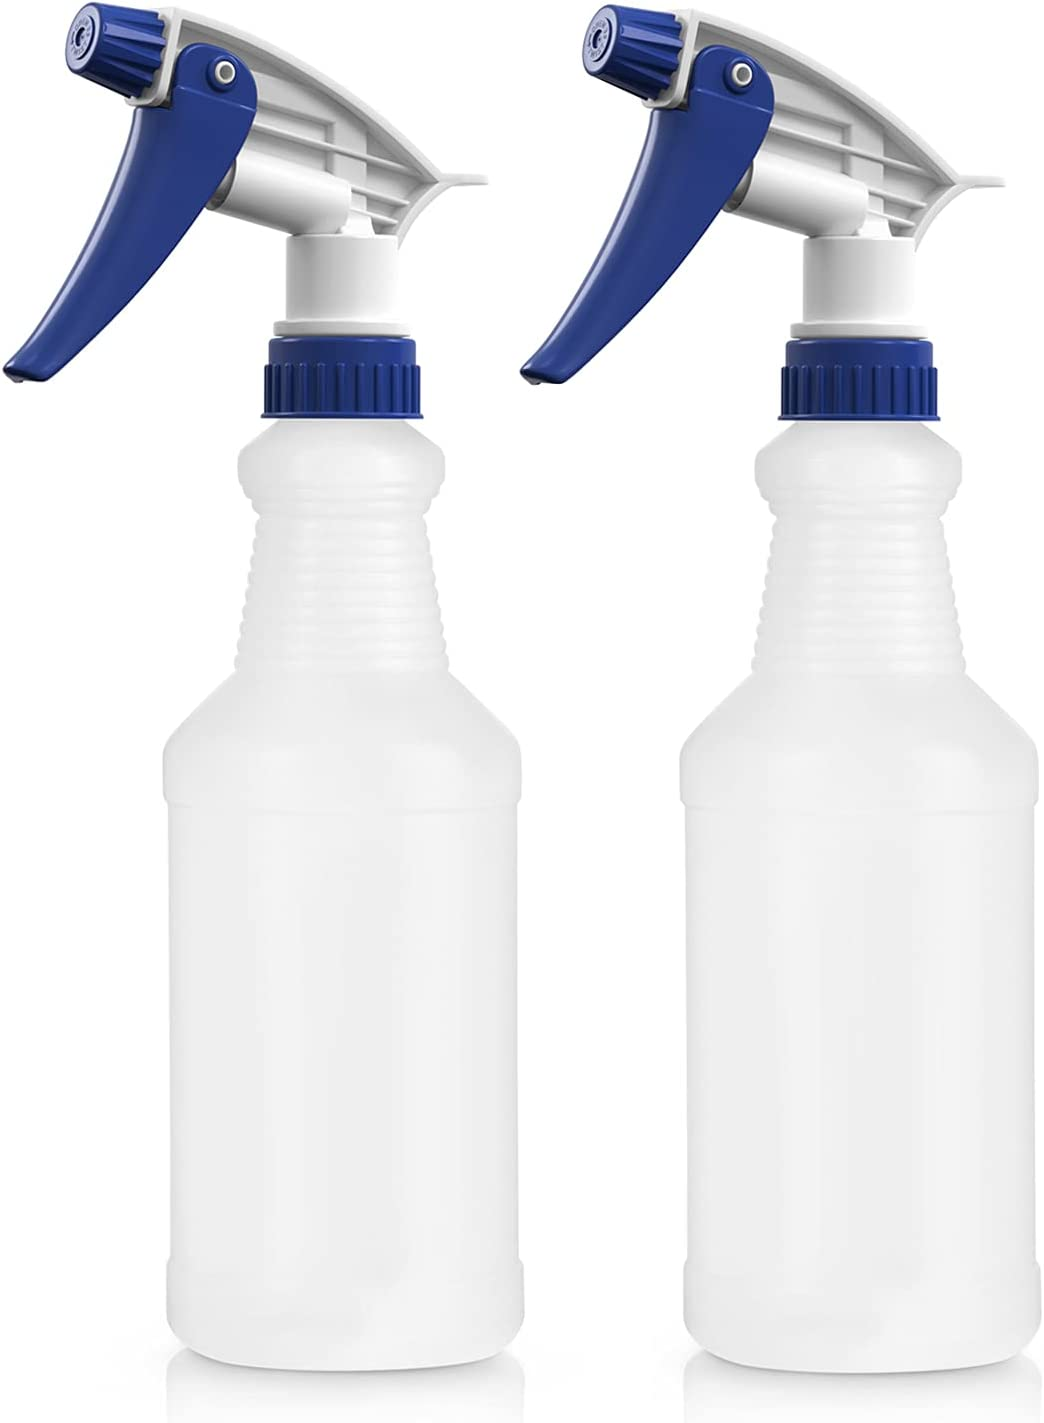 Bar5F 2021new shipping free shipping Plastic Spray Bottles Leak Proof Reservation Pack oz. Empty Value 16